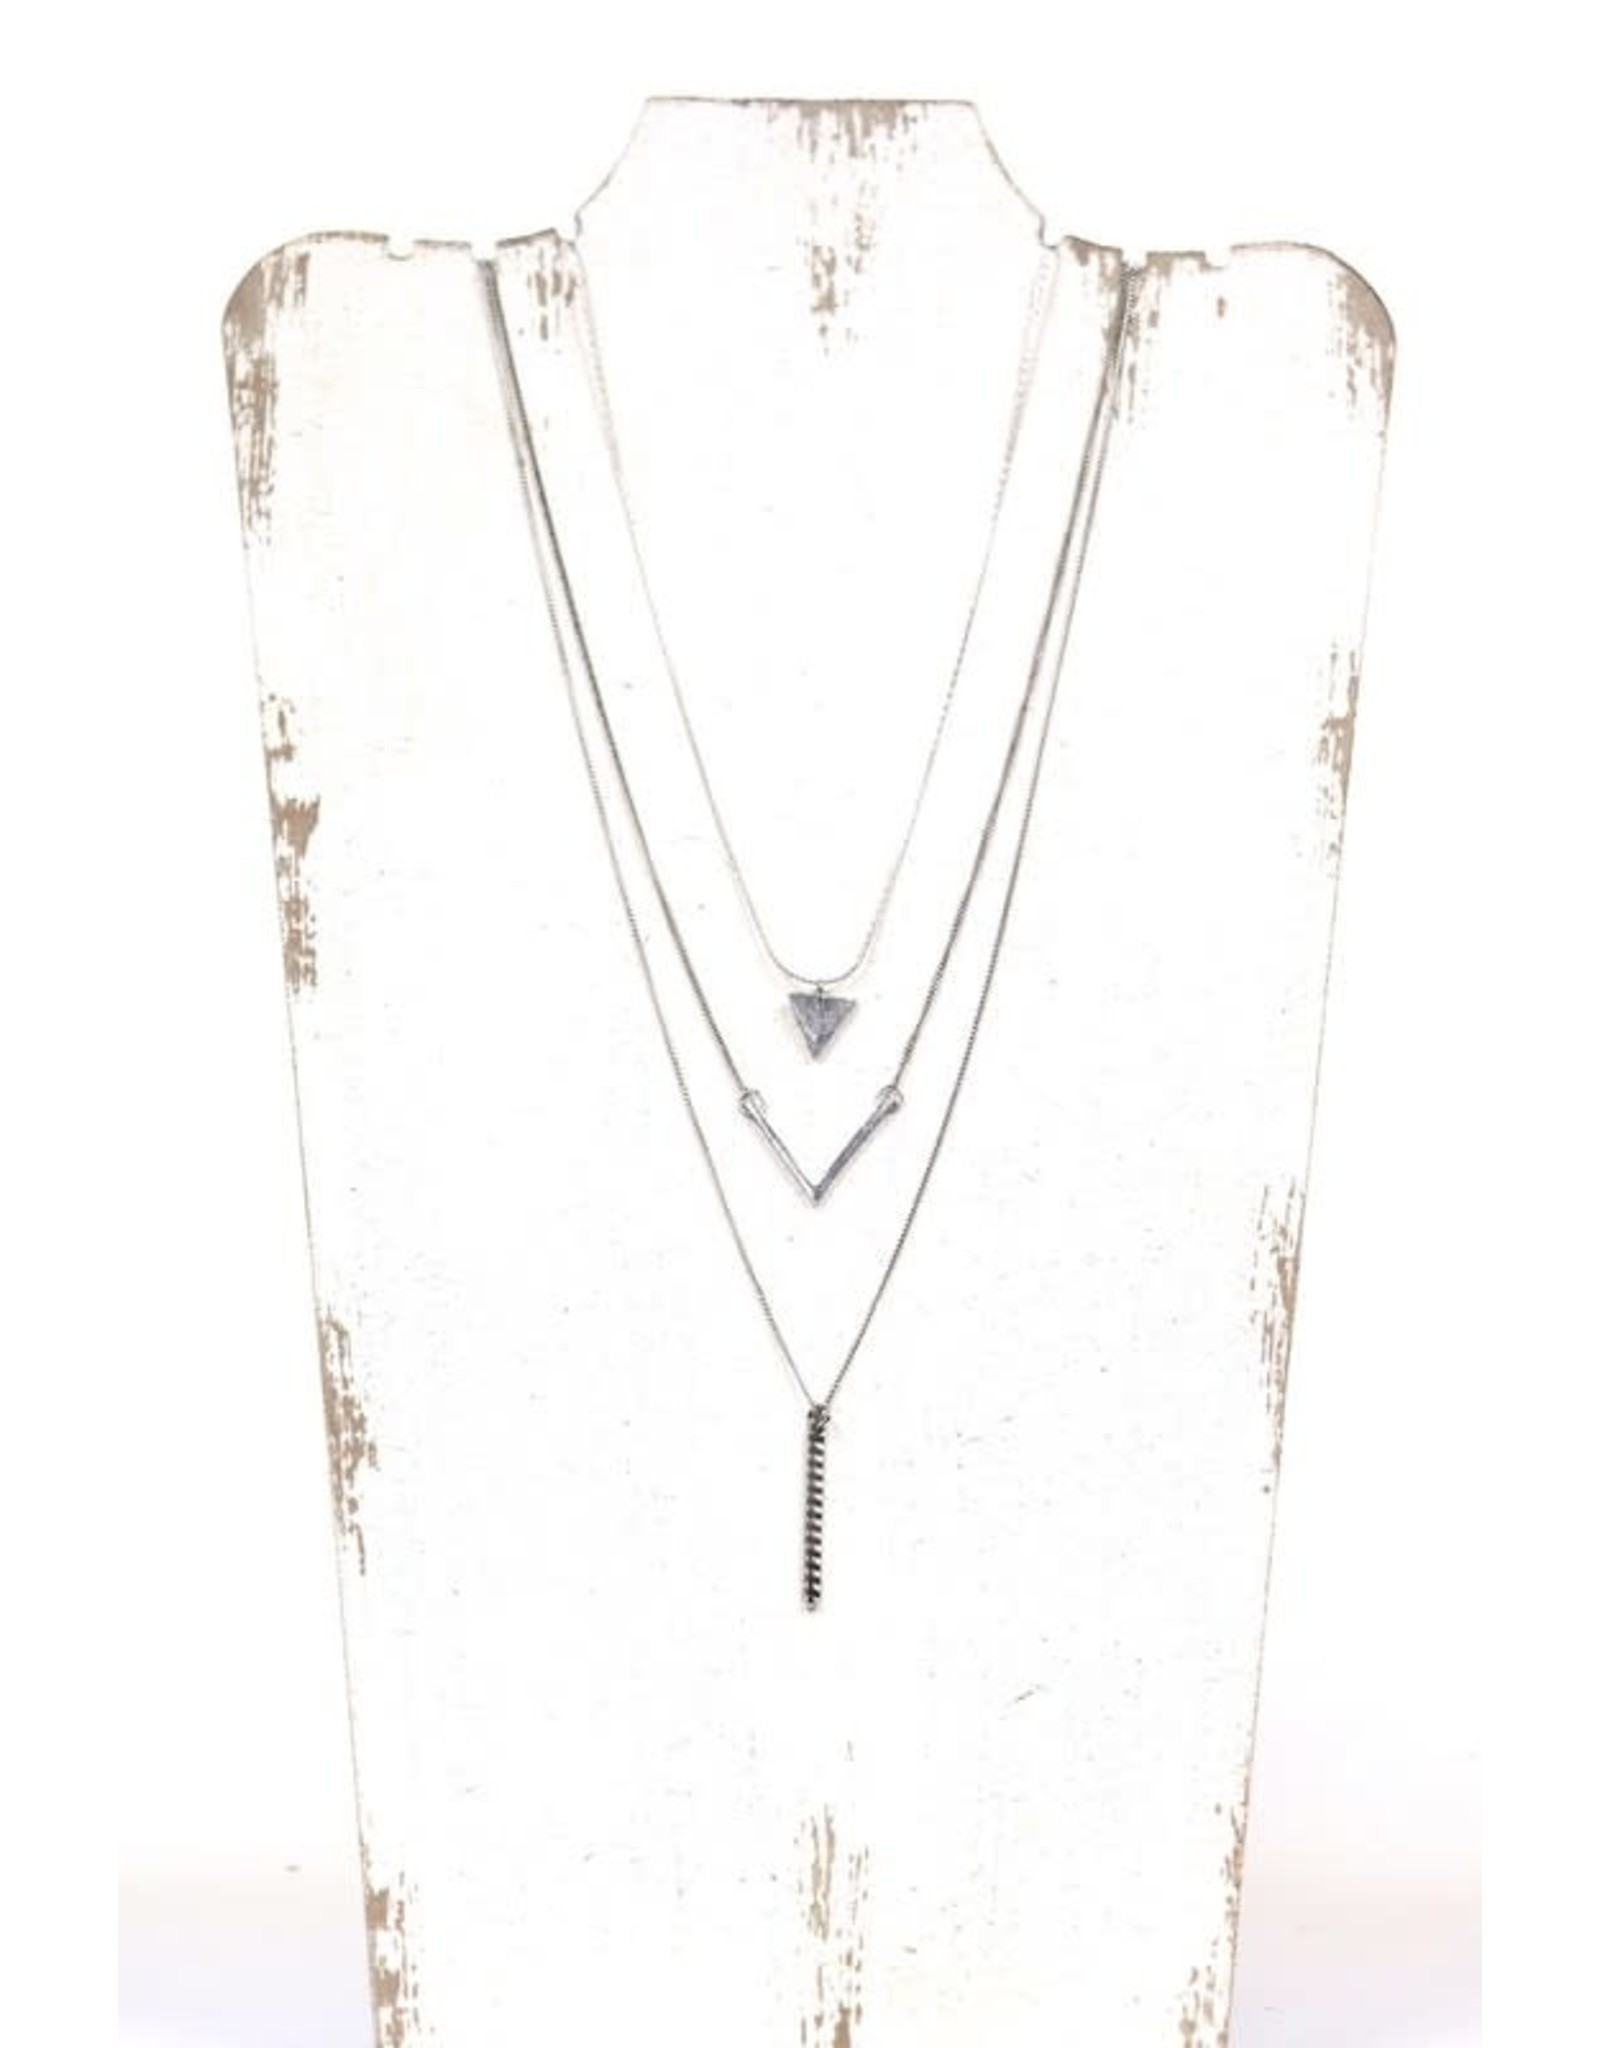 SILVER TRIPLE LAYER TRIANGLE NECKLACE N-119